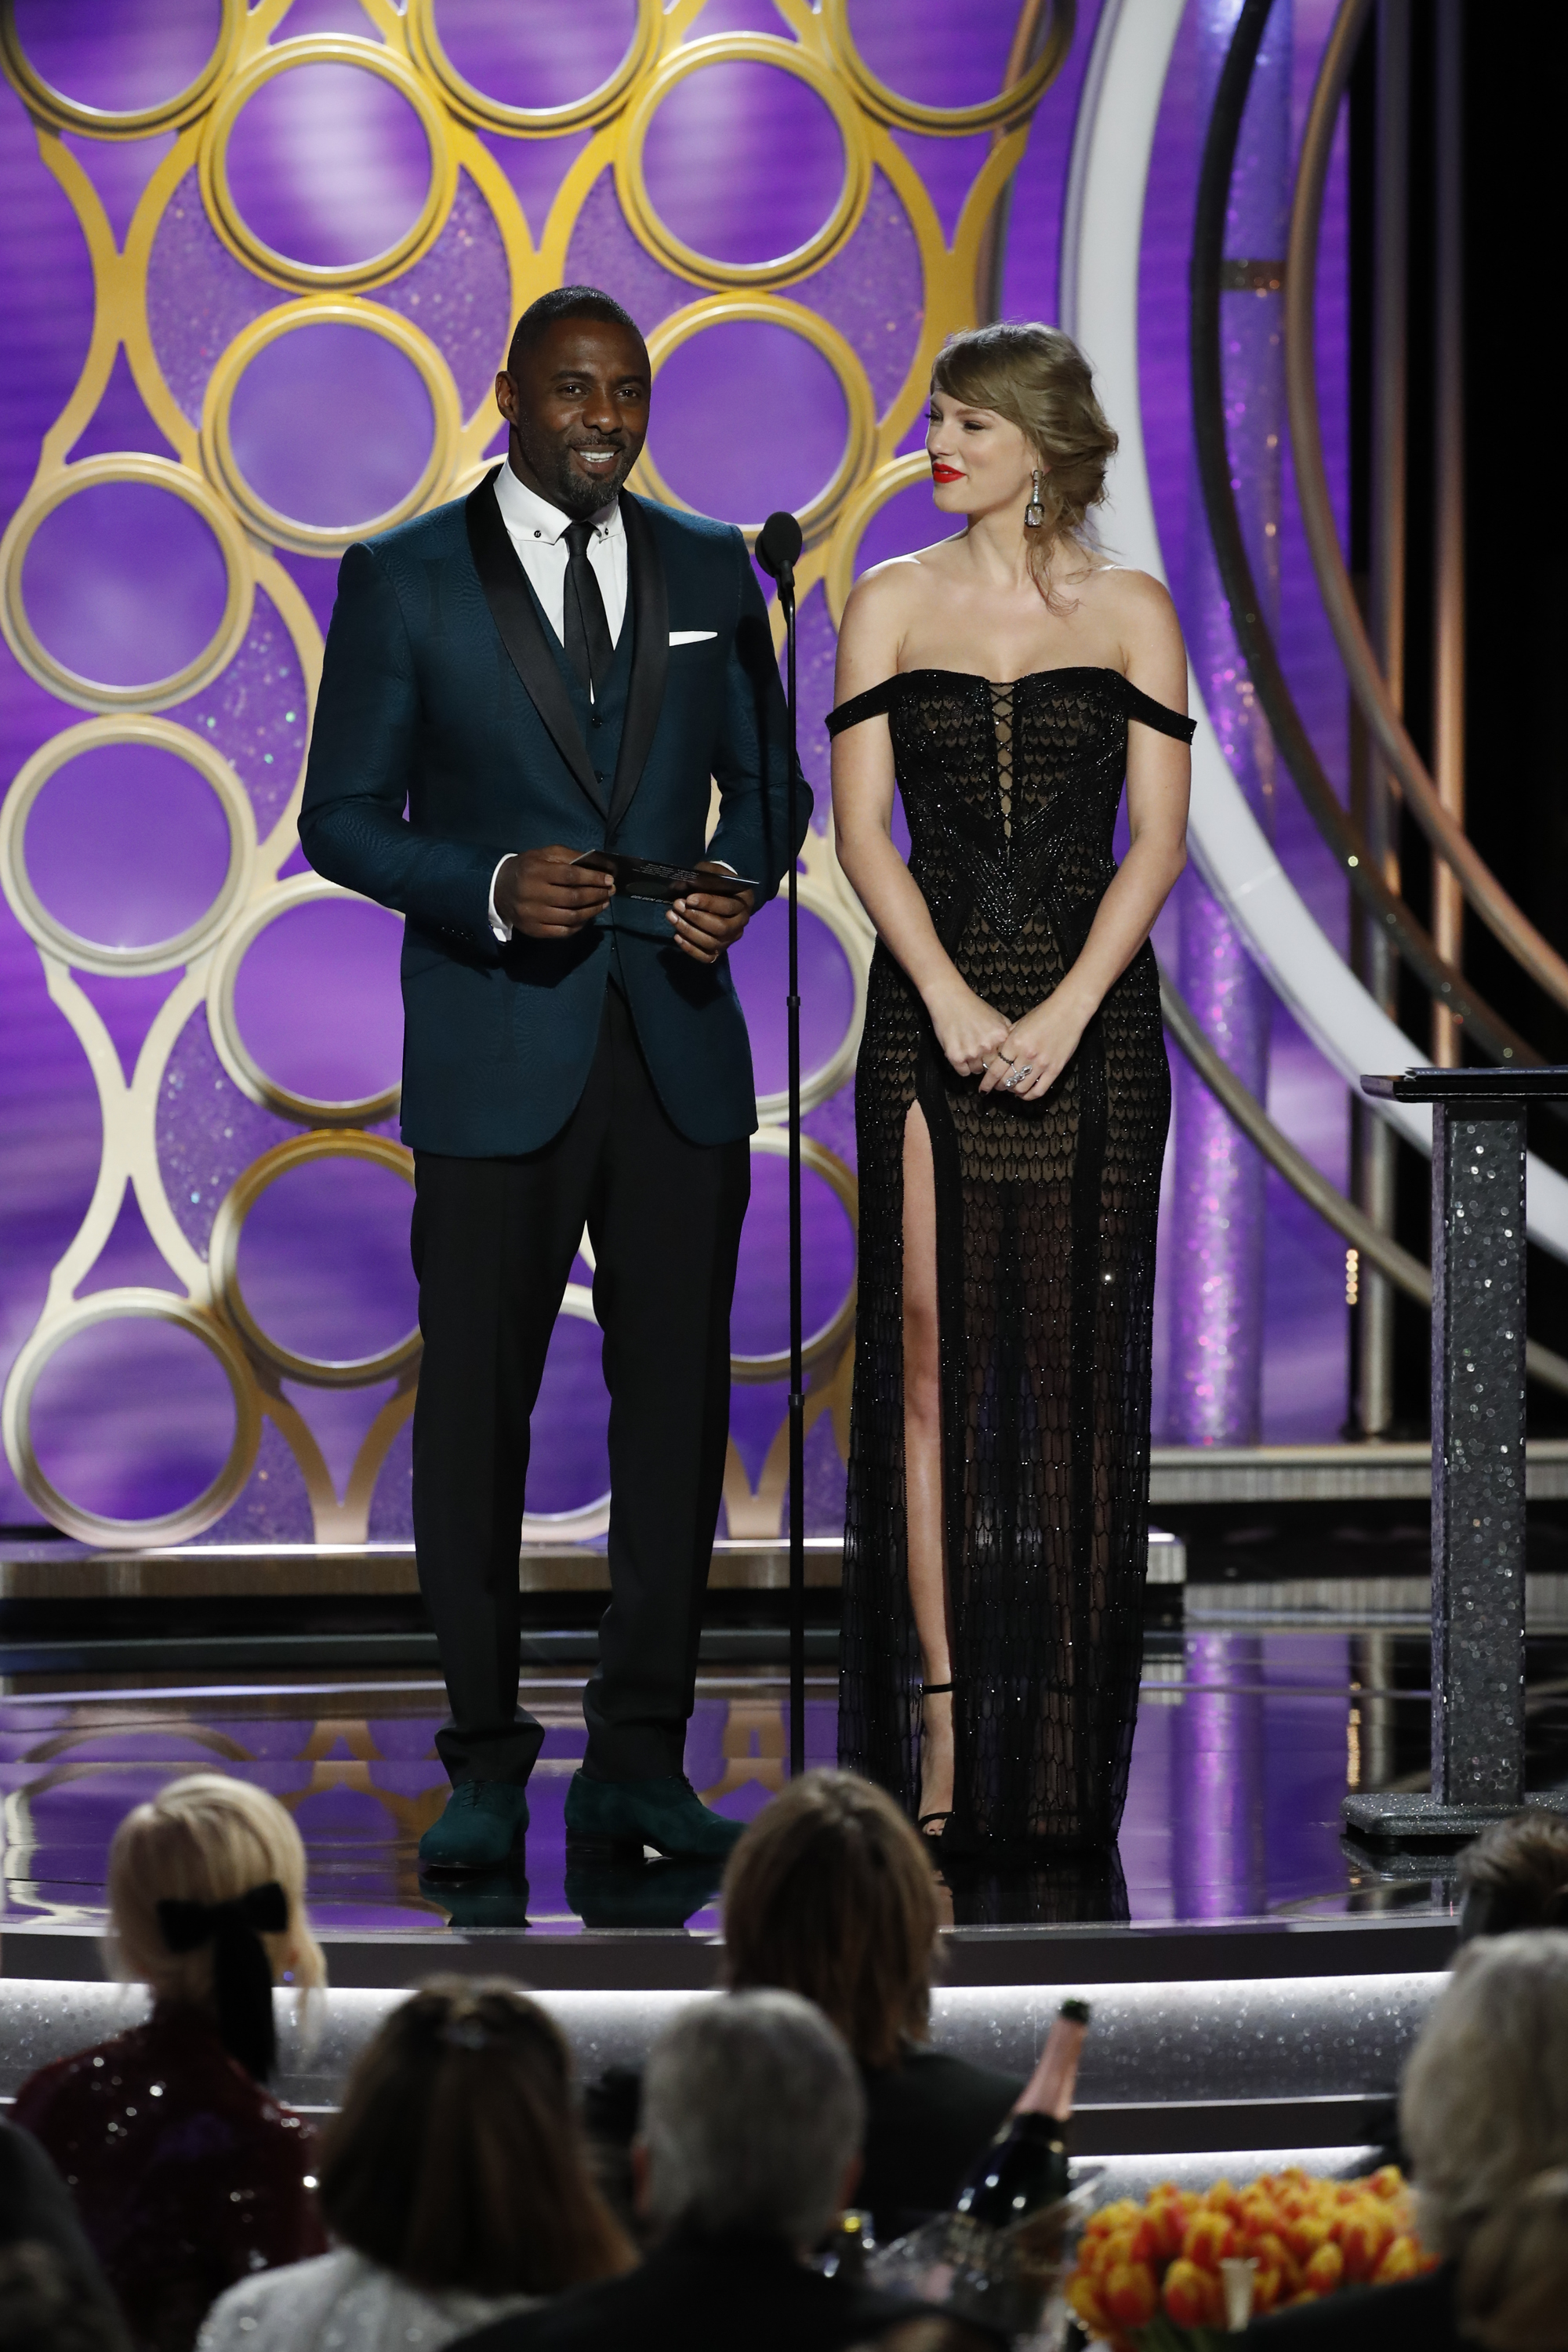 Presenters Taylor Swift and Idris Elba speak onstage during the 76th Annual Golden Globe Awards at The Beverly Hilton Hotel on January 06, 2019 in Beverly Hills, California.